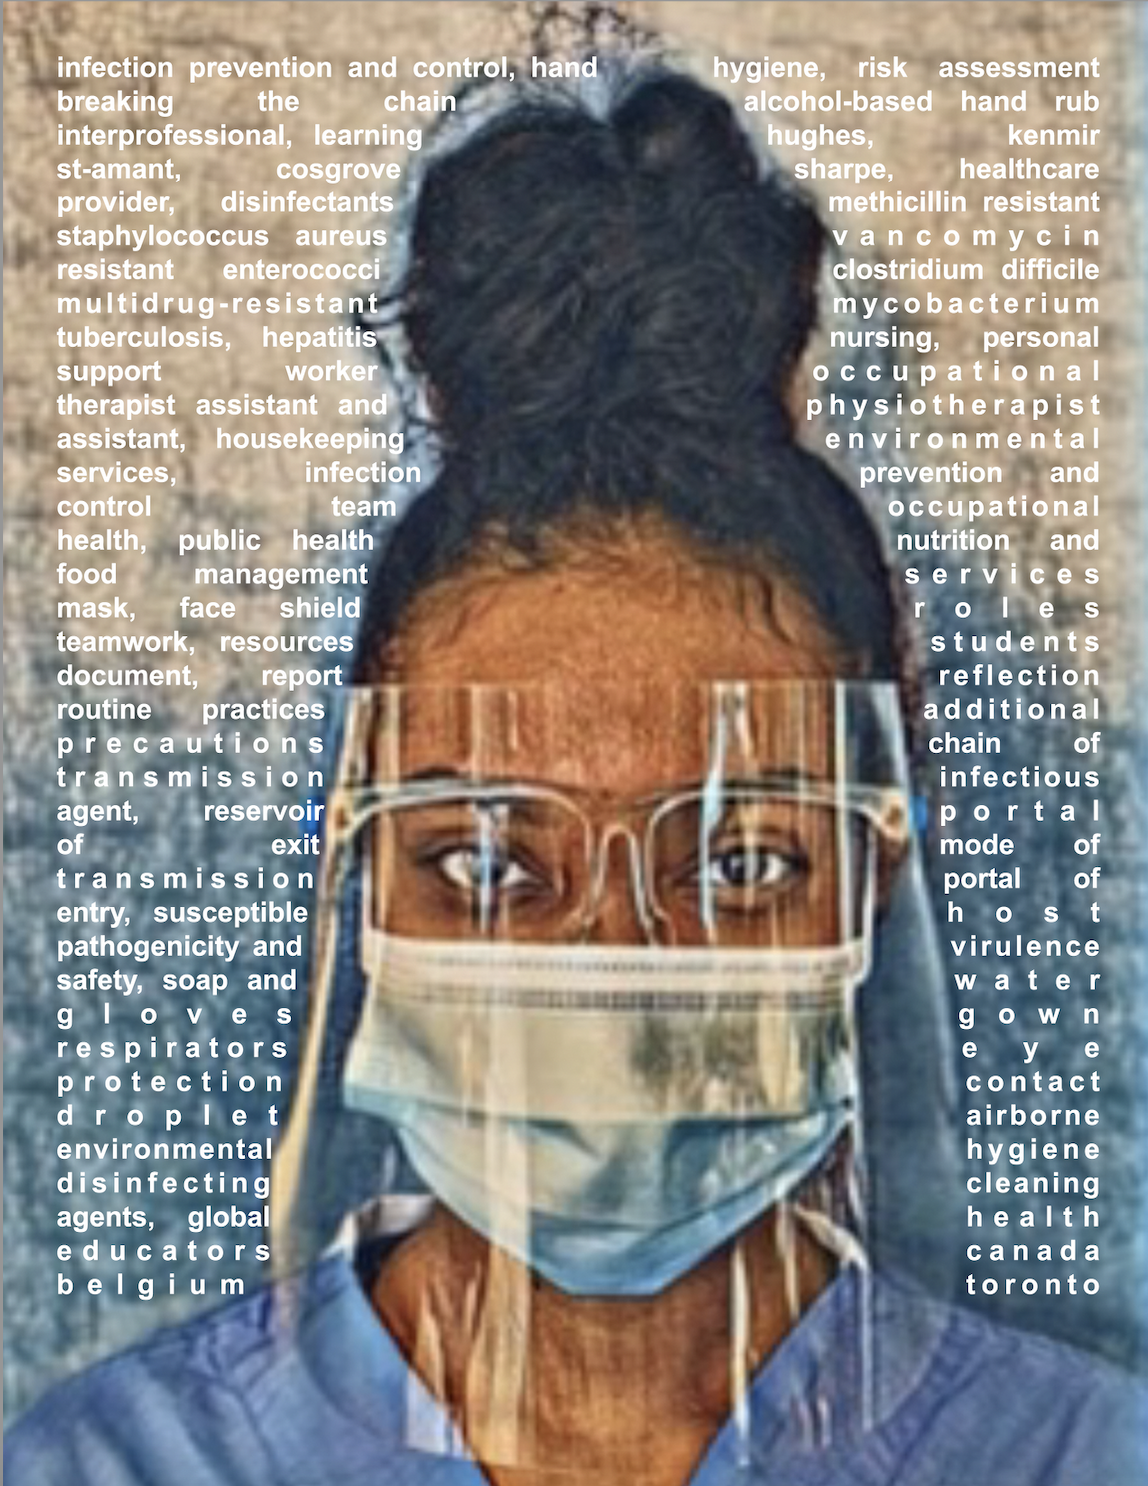 Cover image for Introduction to Infection Prevention and Control Practices for the Interprofessional Learner